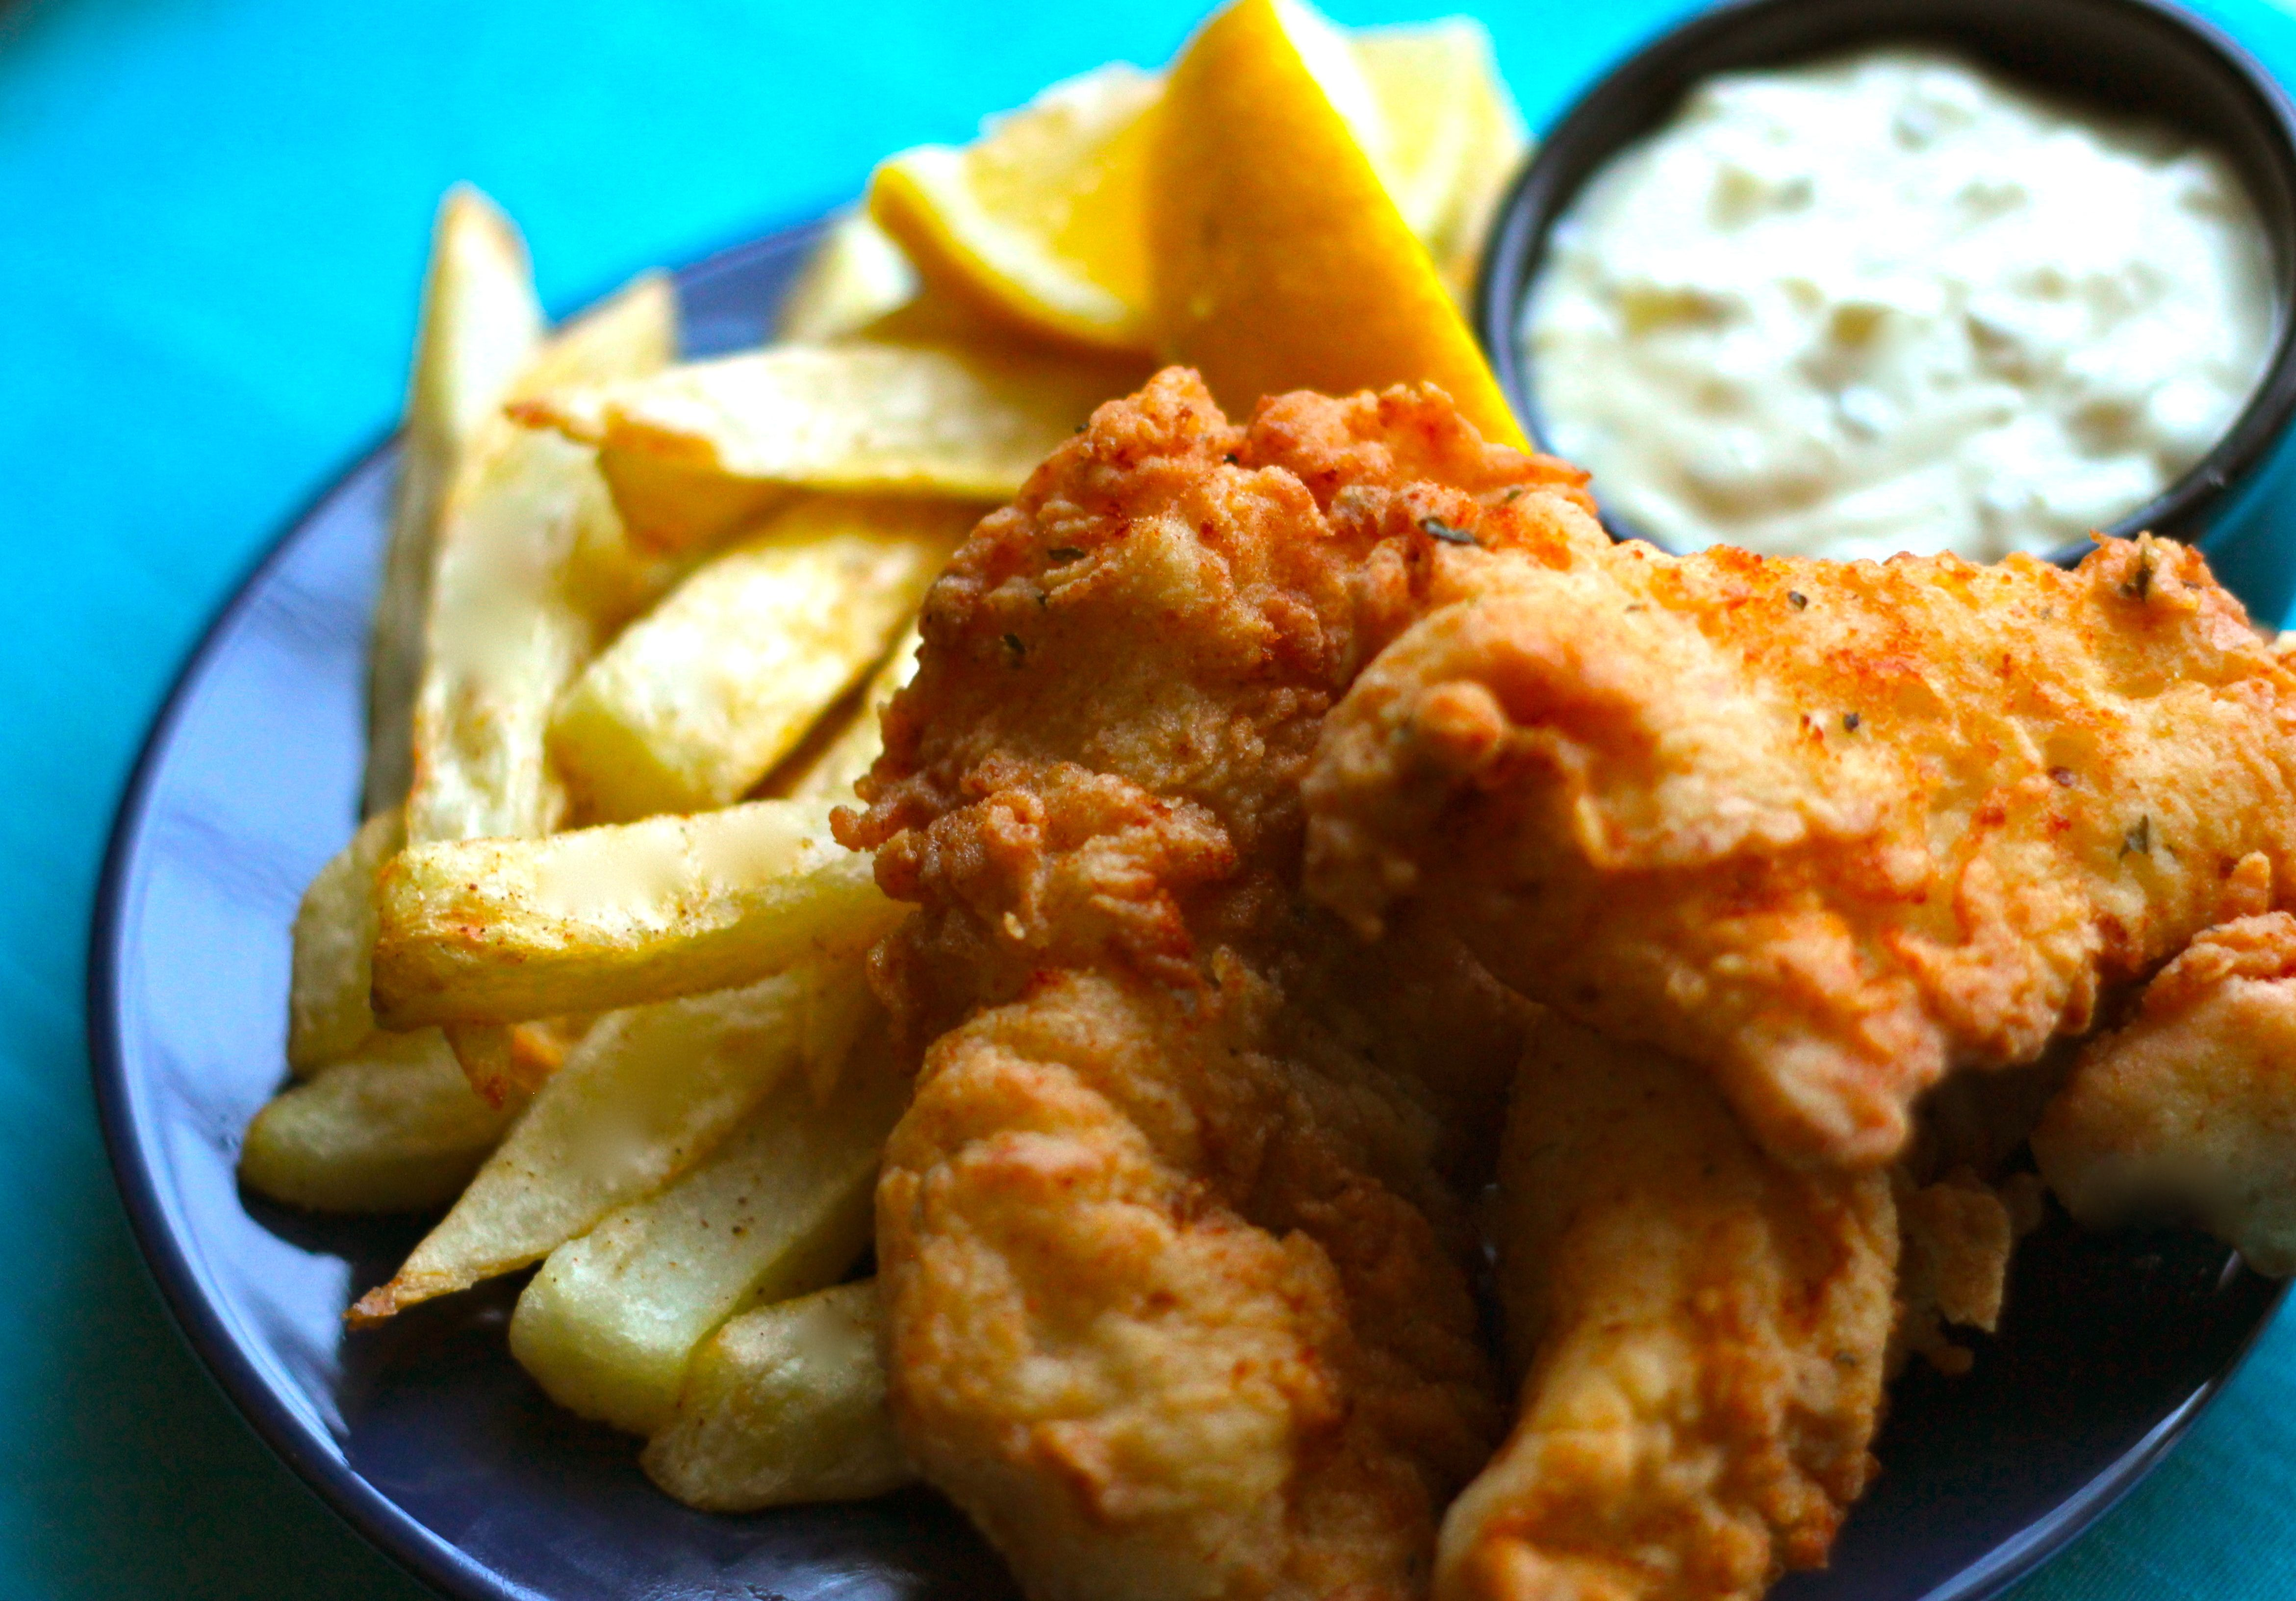 Fish & Chips This recipe rivals anything you can buy at